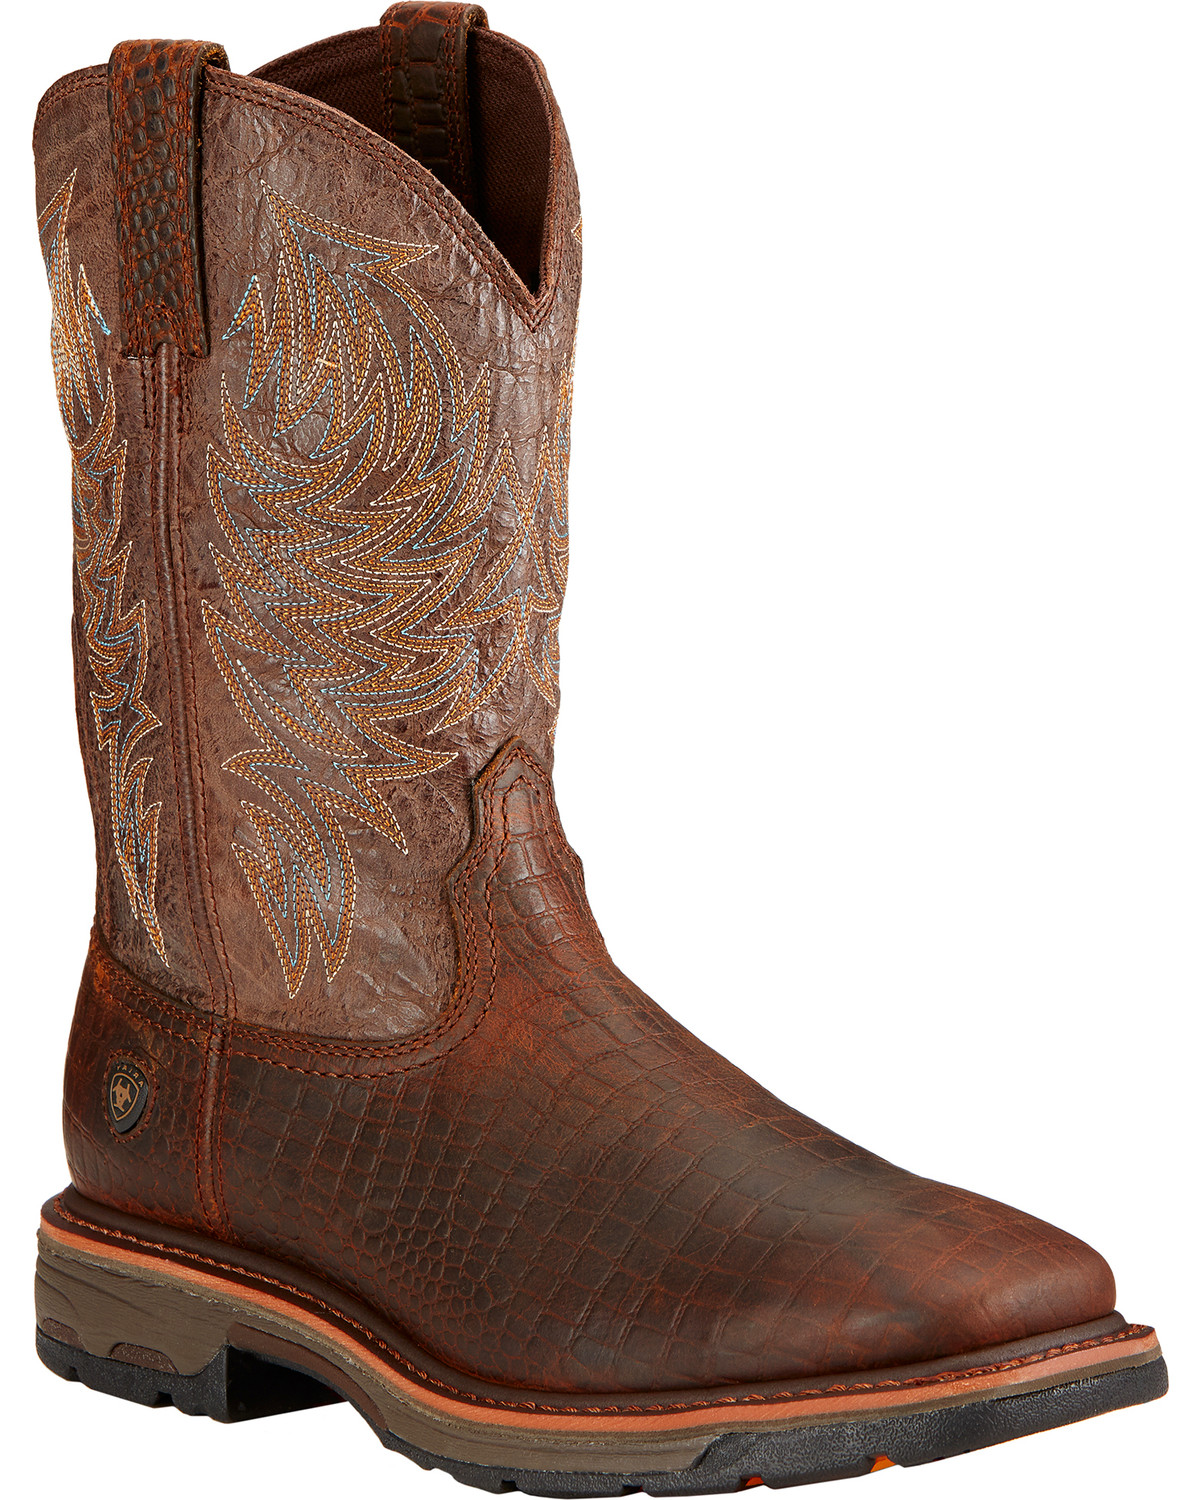 86f8848b25e Ariat Workhog Croc Print Wide Square Toe Work Boots | Boot Barn